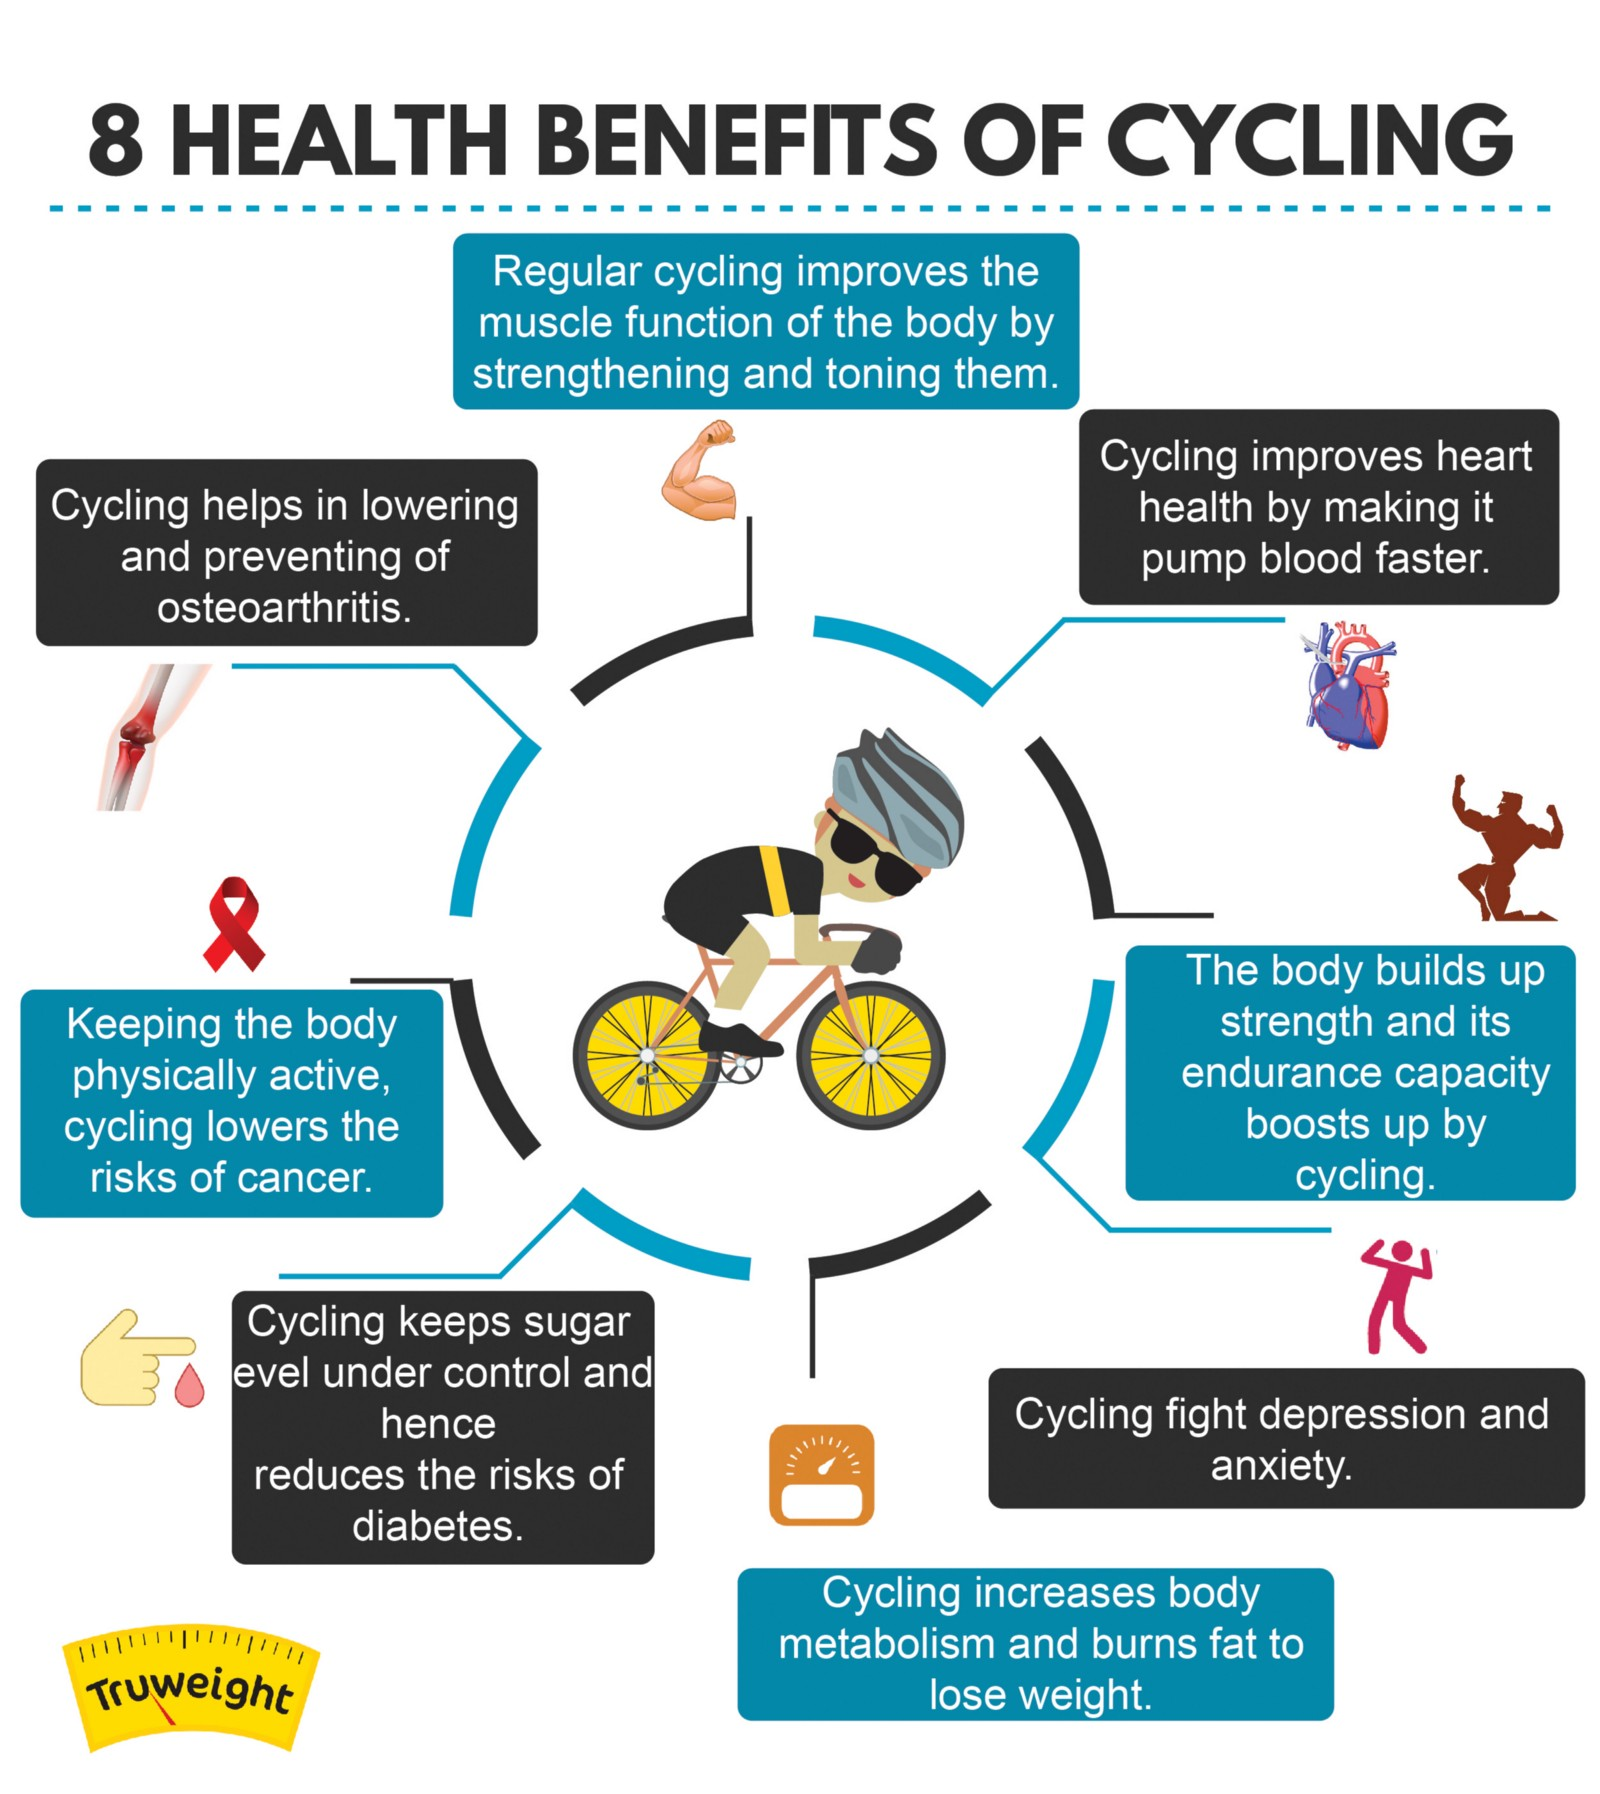 Health benefits of cycling exercise daily images